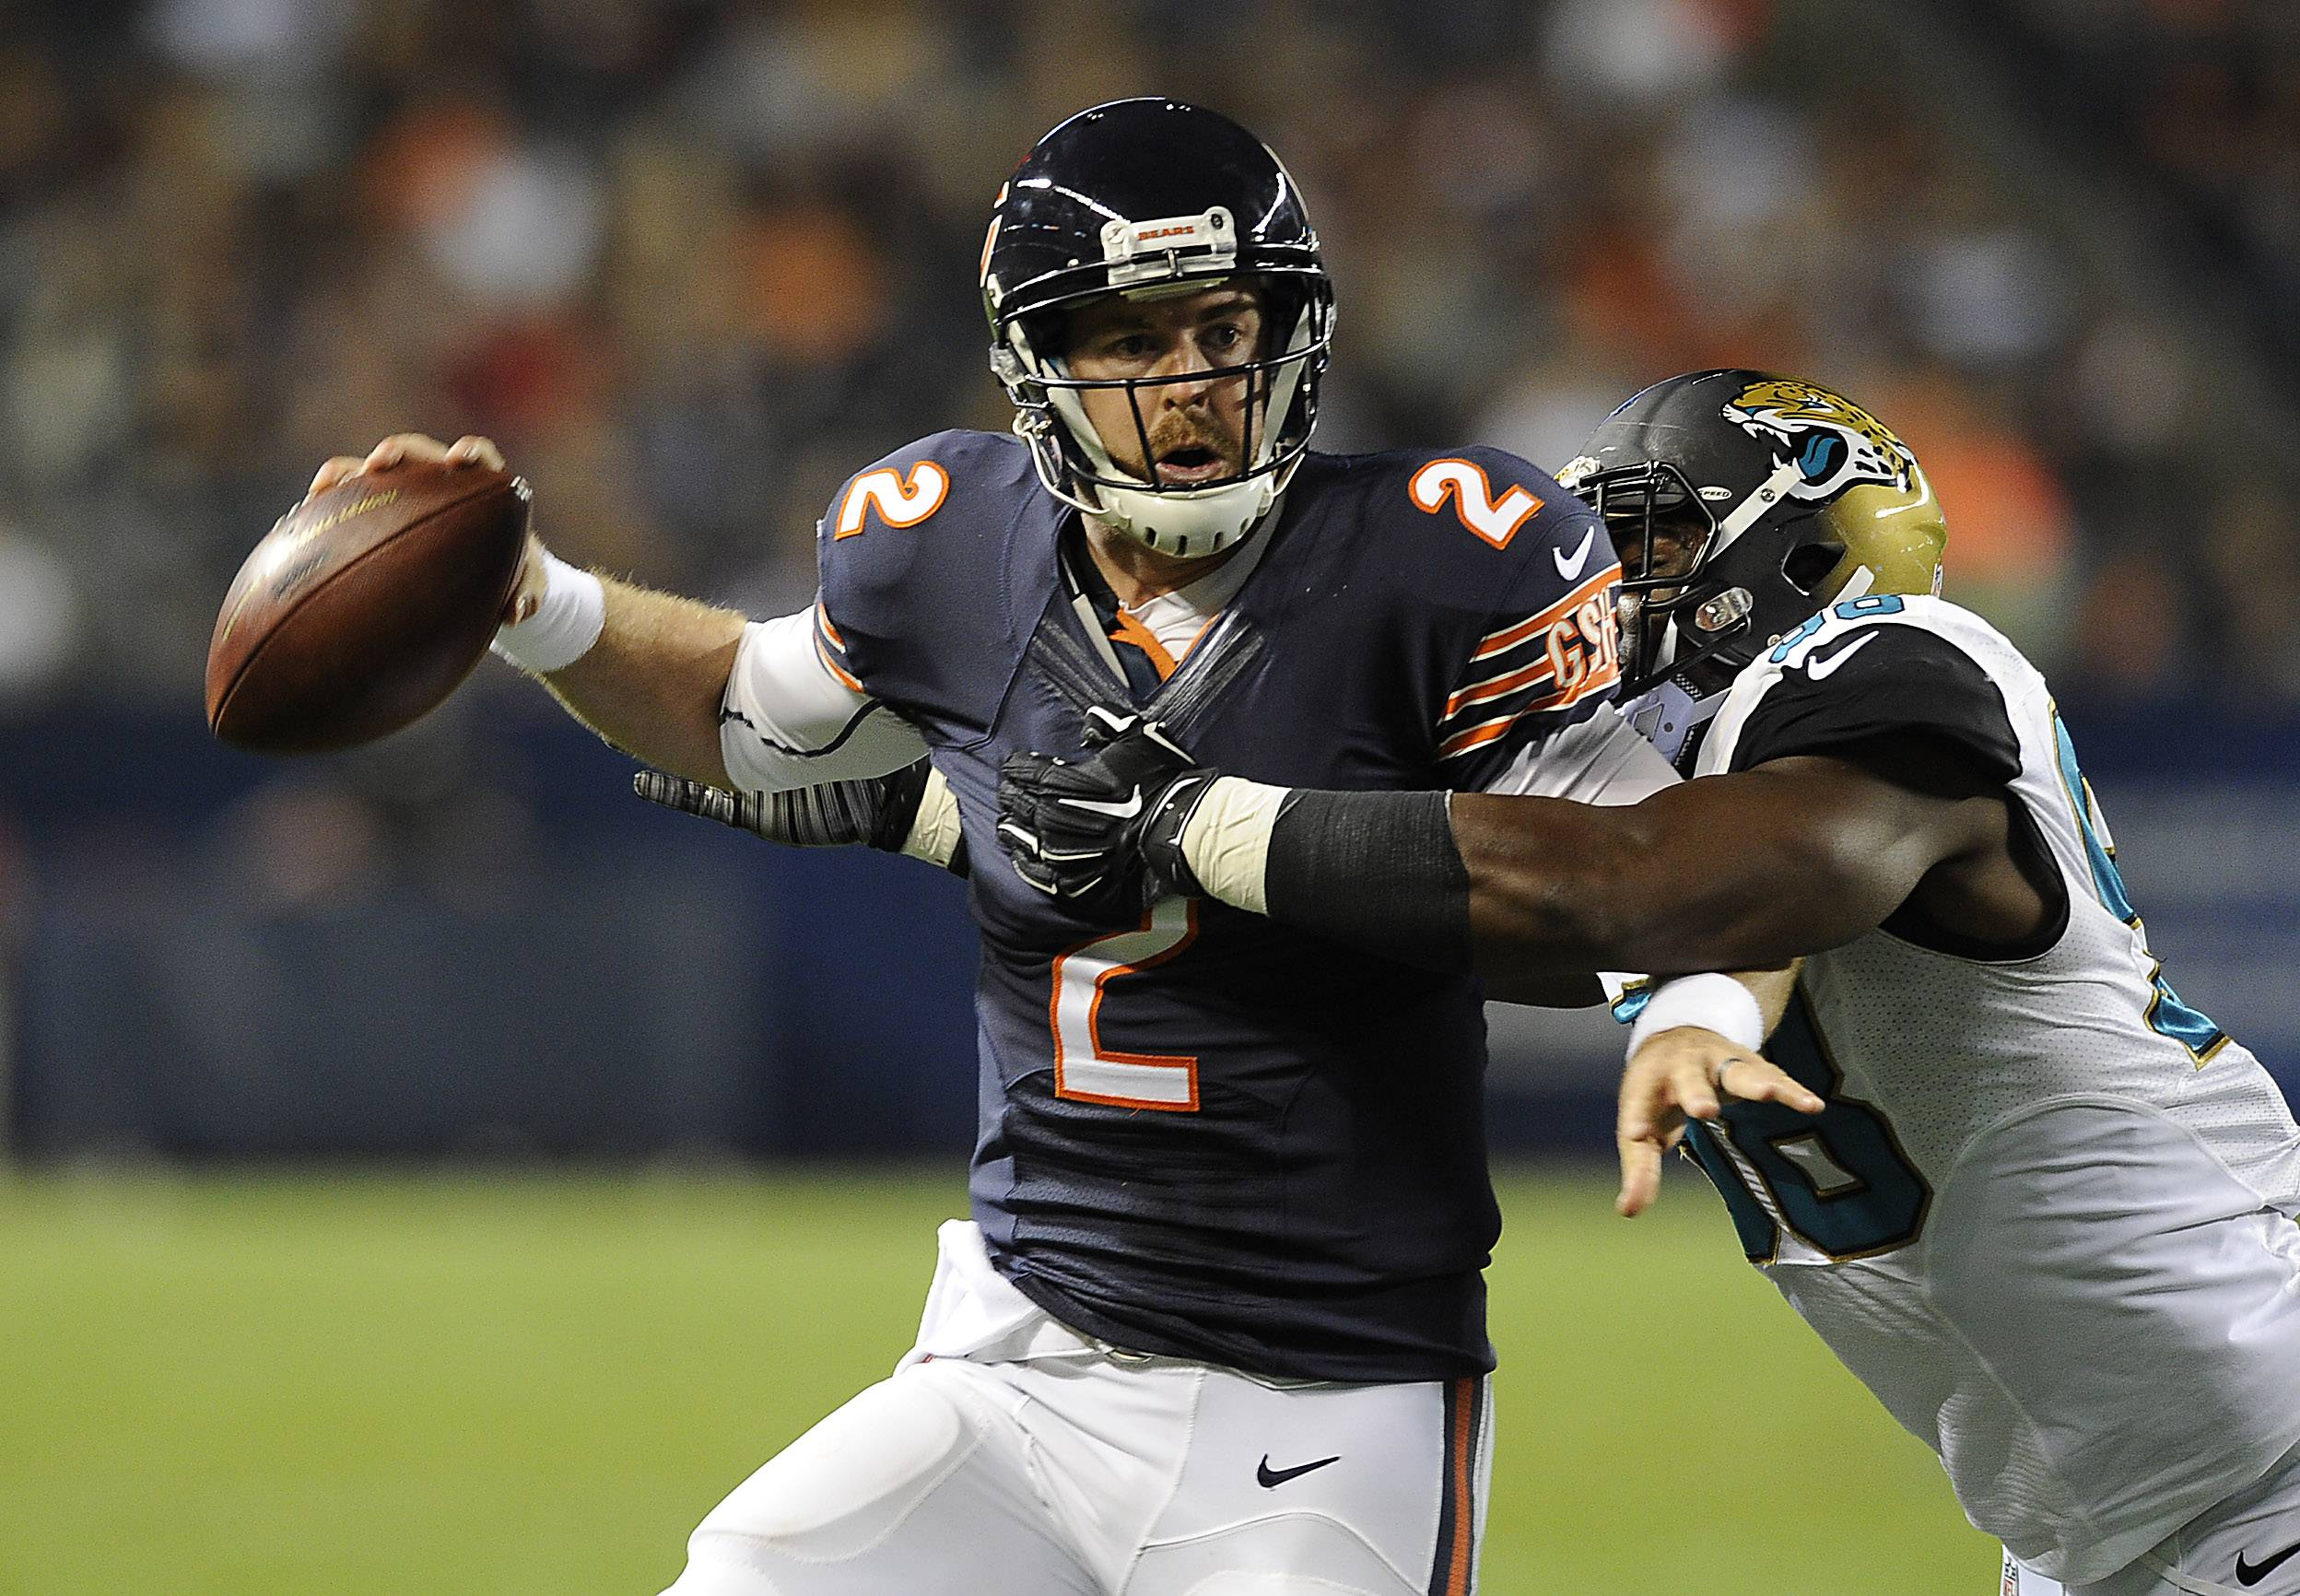 Jordan Palmer fires downfield under pressure against the Jaguars in the Bears' second preseason game. He'll be the first QB off the bench Friday when the Bears play at Seattle.